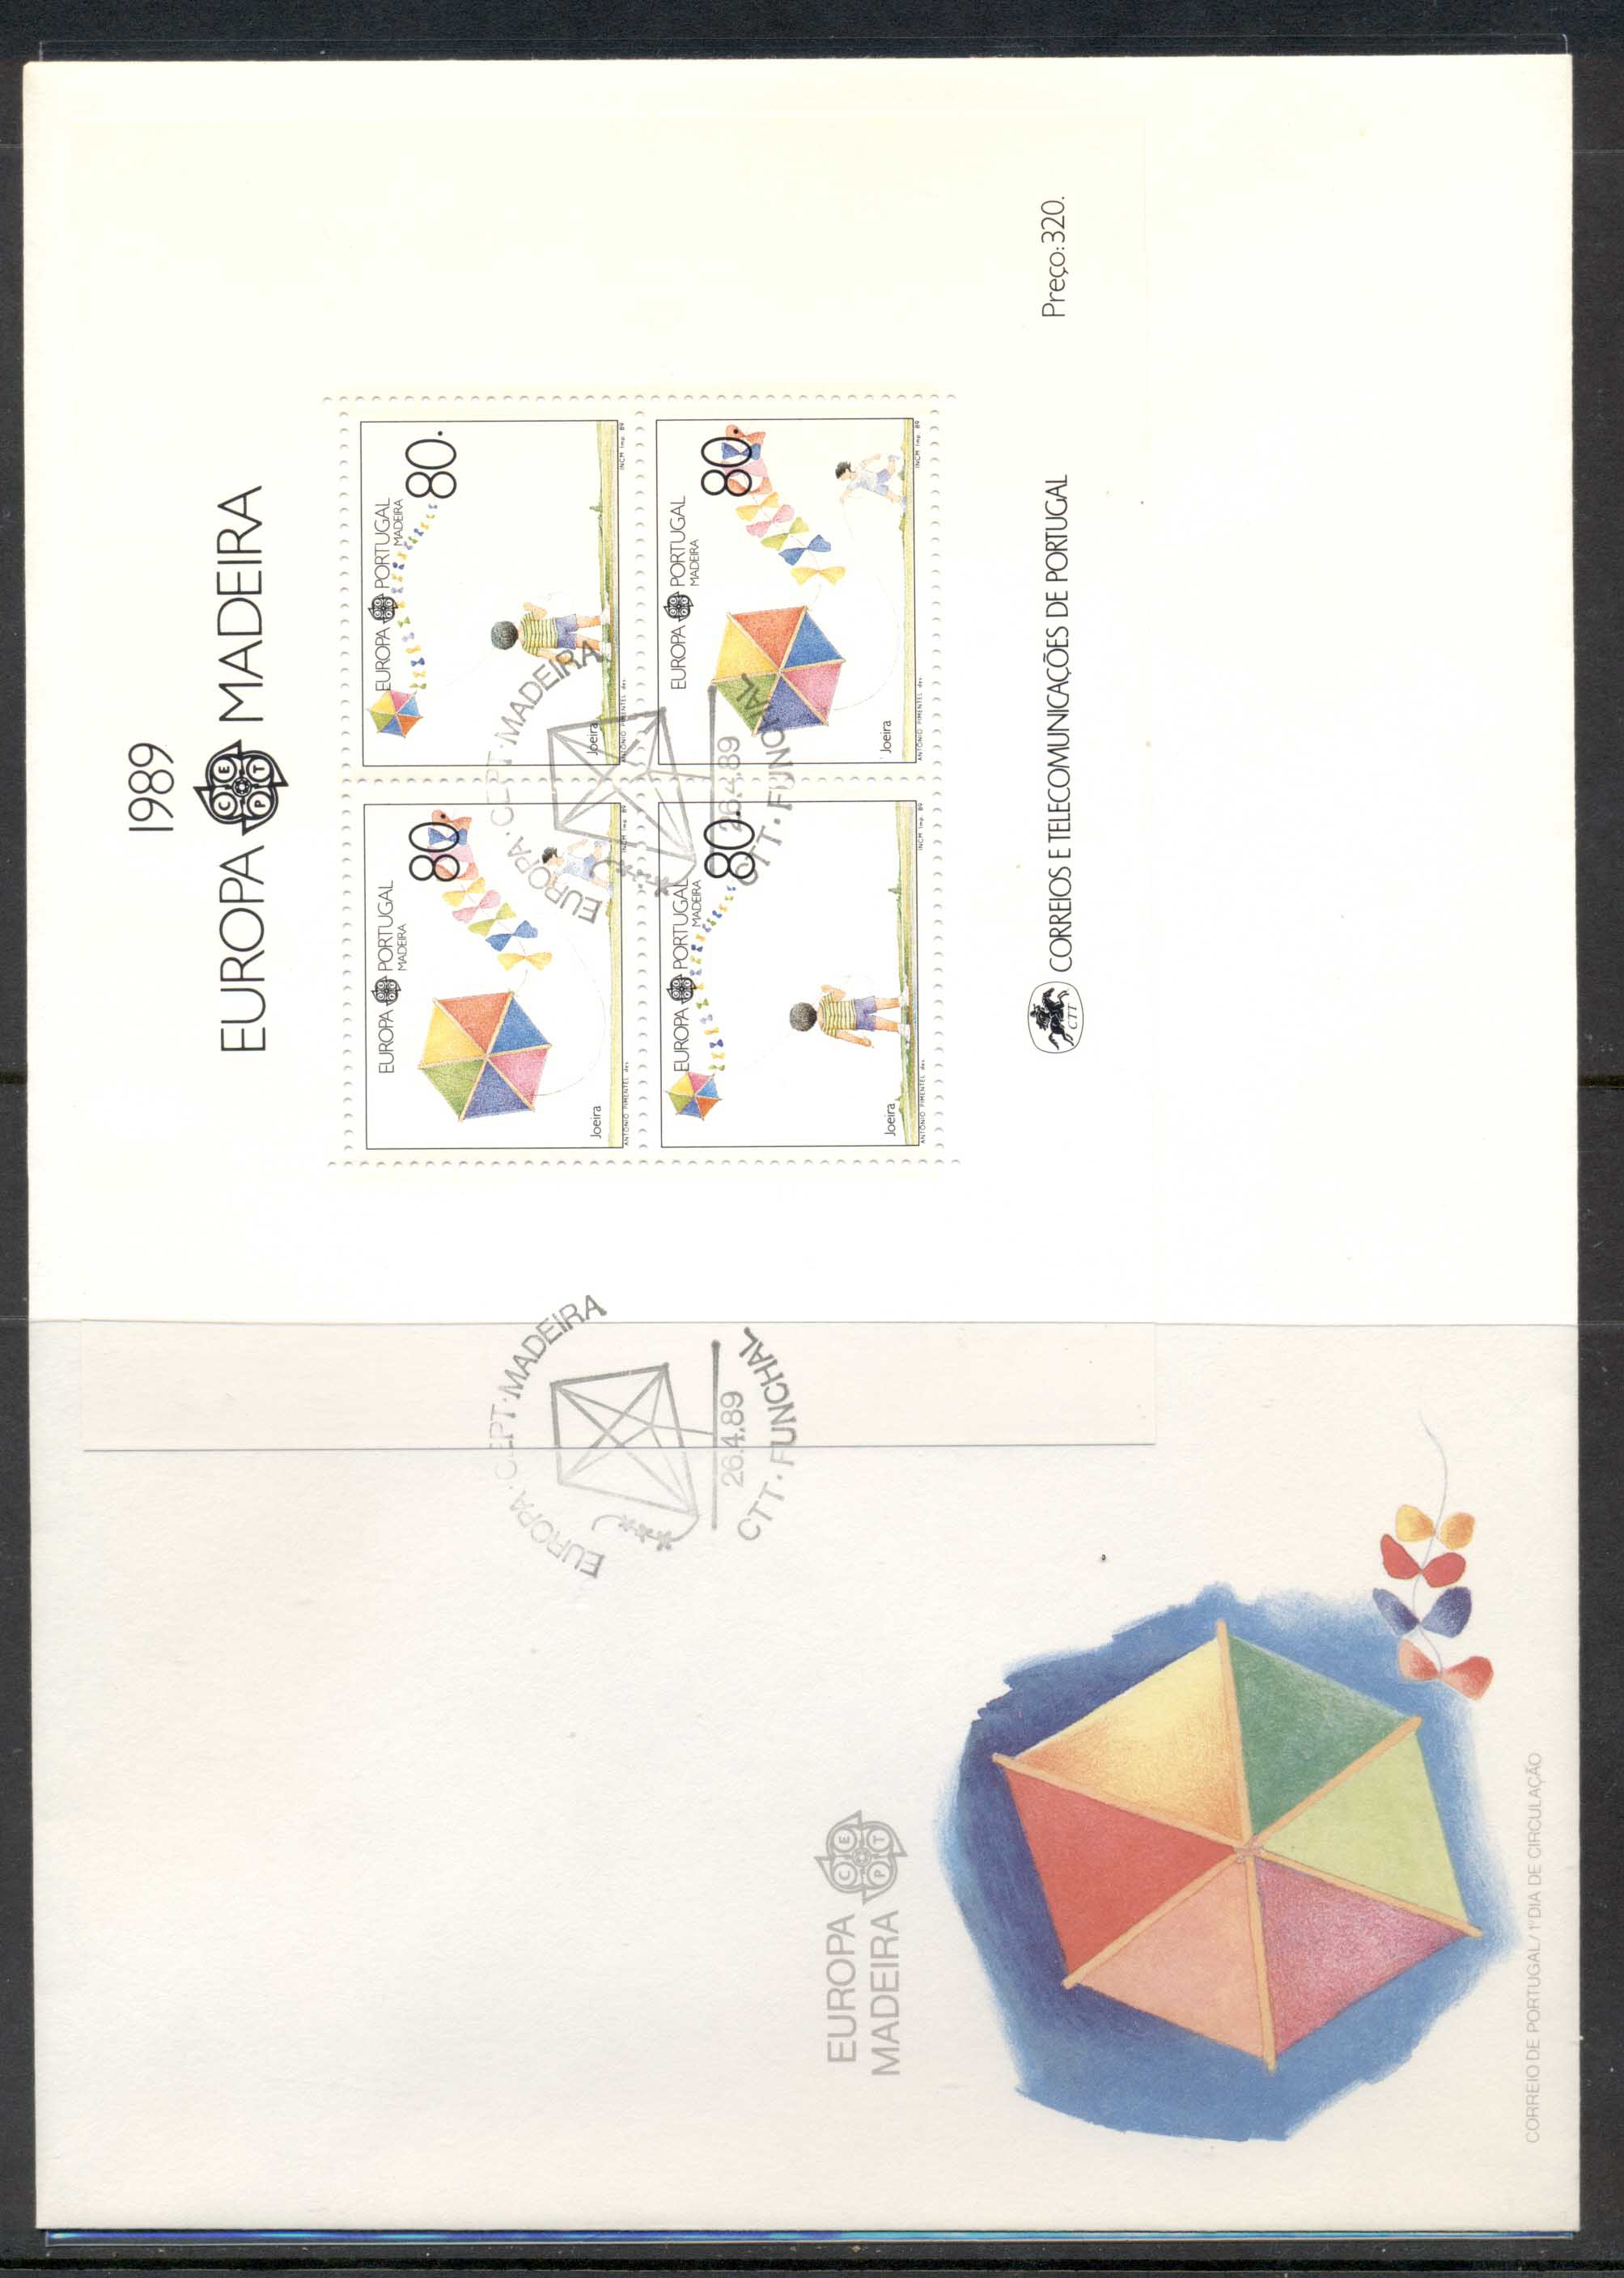 Madeira 1989 Europa Children's Play XLMS FDC